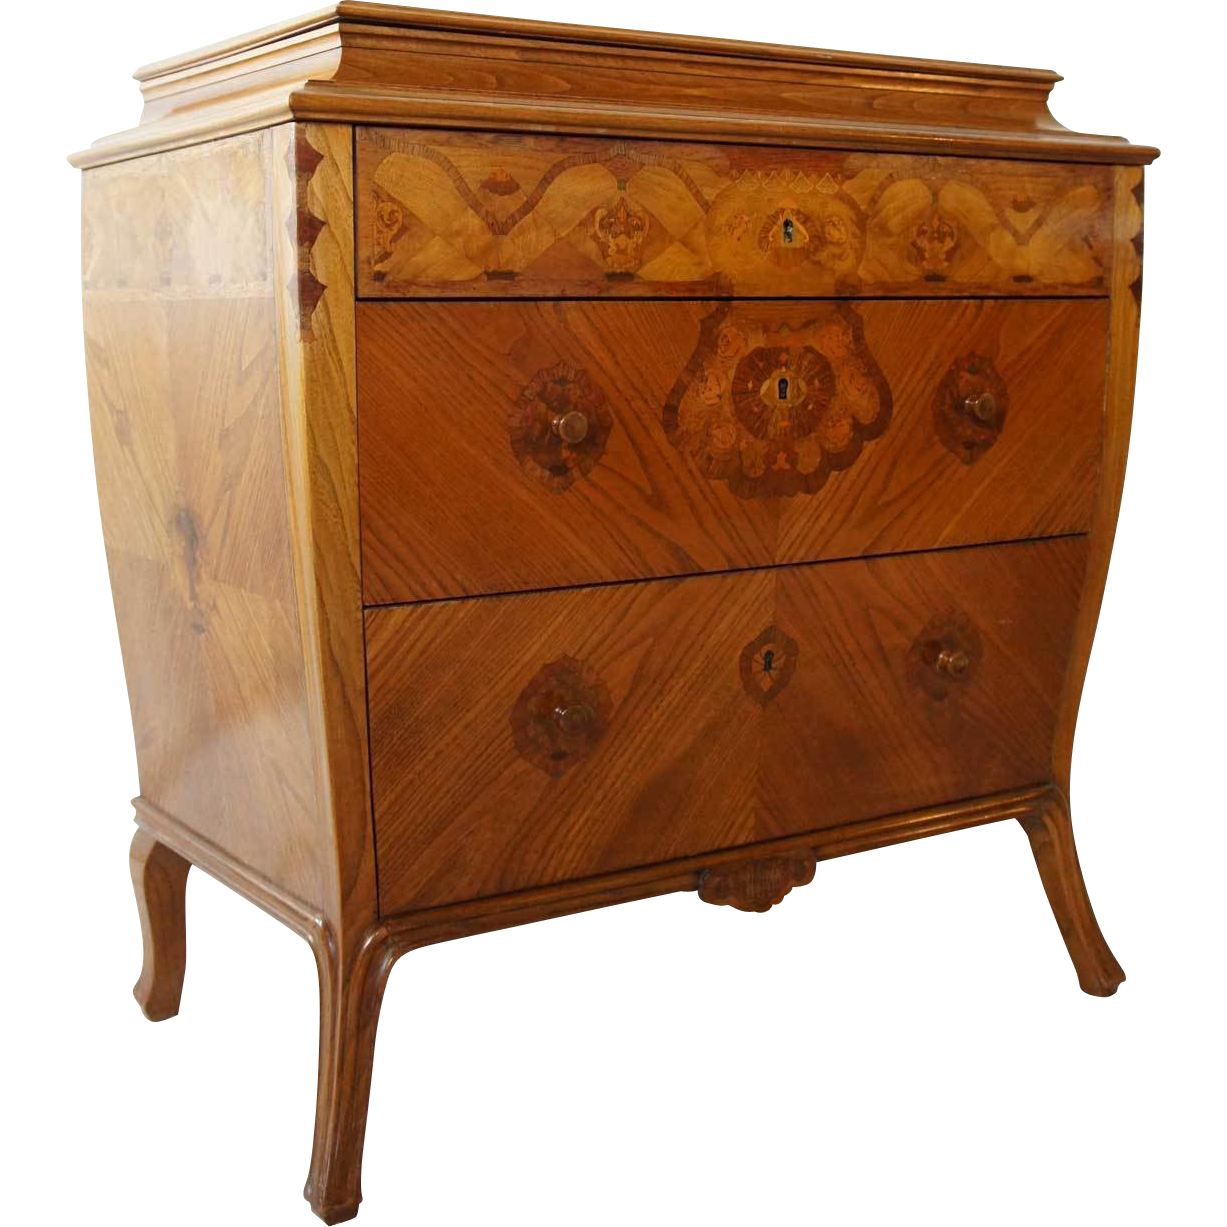 Danish Marquetry Elm Veneer Lift-Top Commode